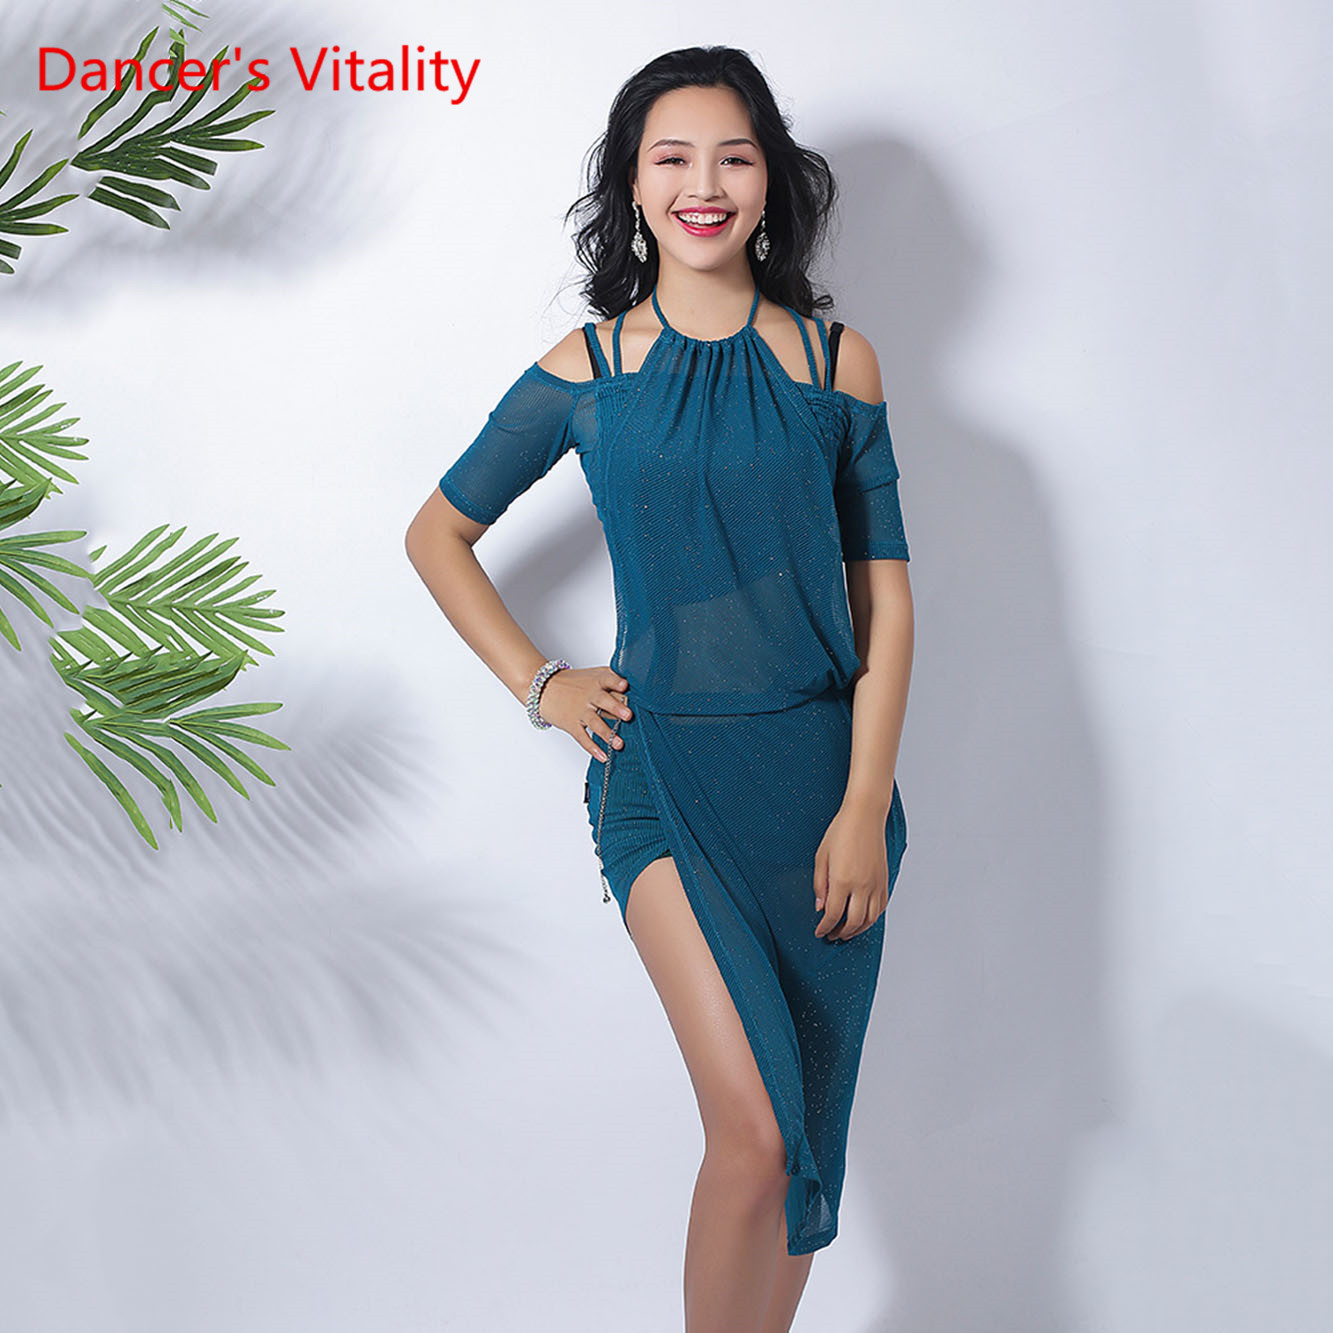 Summer New Belly Dance Practice Clothes Solid Color Sexy Dance Long Skirt Thin Short Sleeve Suit Top+Skirt 2pcs